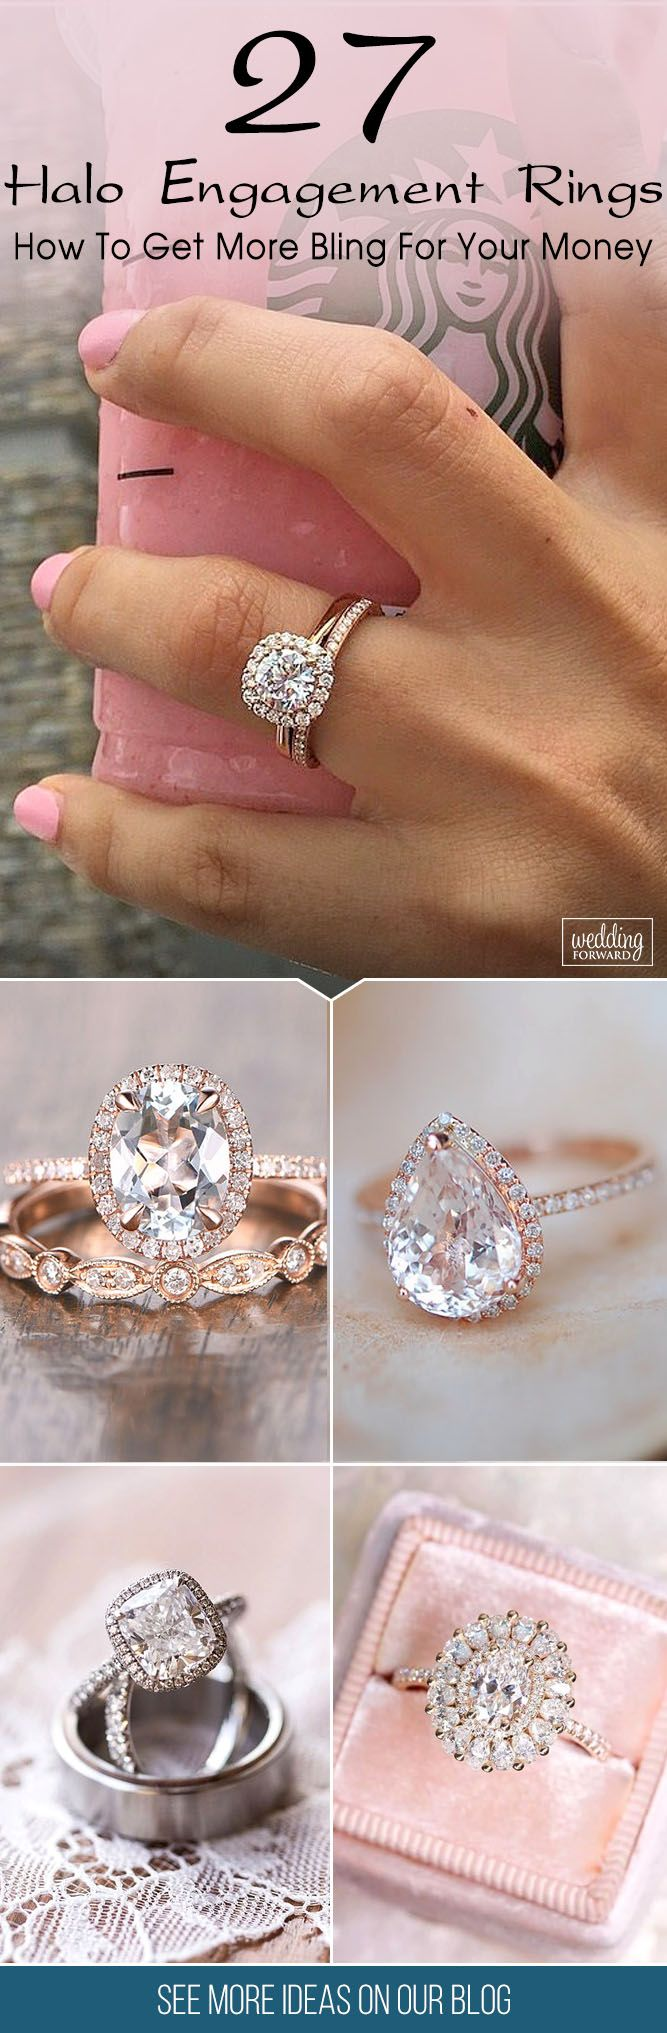 construction eternity armentor stacked d pinterest images a ring on best rings e engagement jewelers marriage wedding band engagements m r courtneyalanie round solitaire